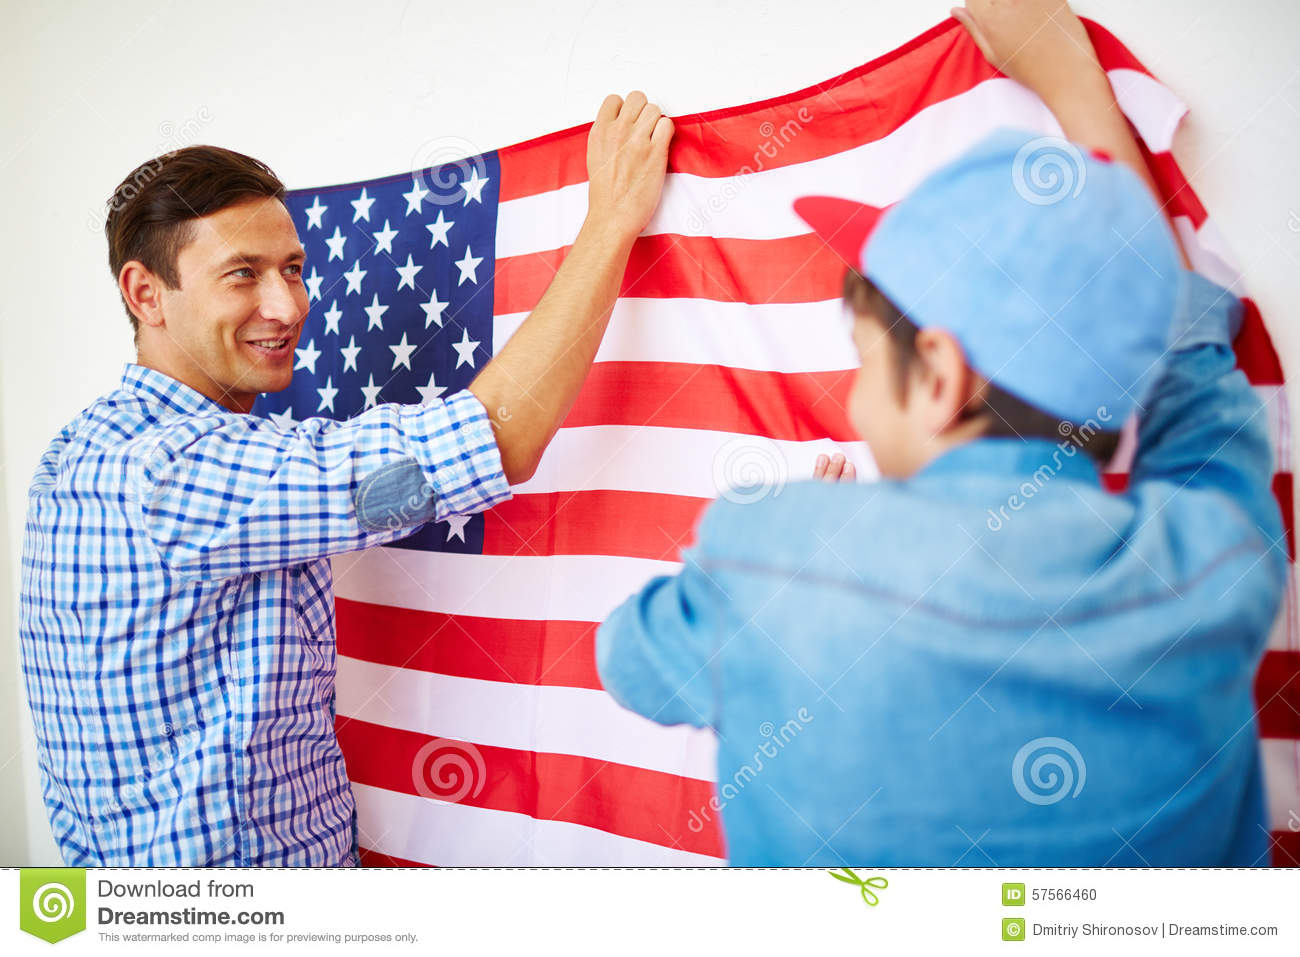 Hang Flag On Wall hanging american flag on wall stock photo - image: 57566460